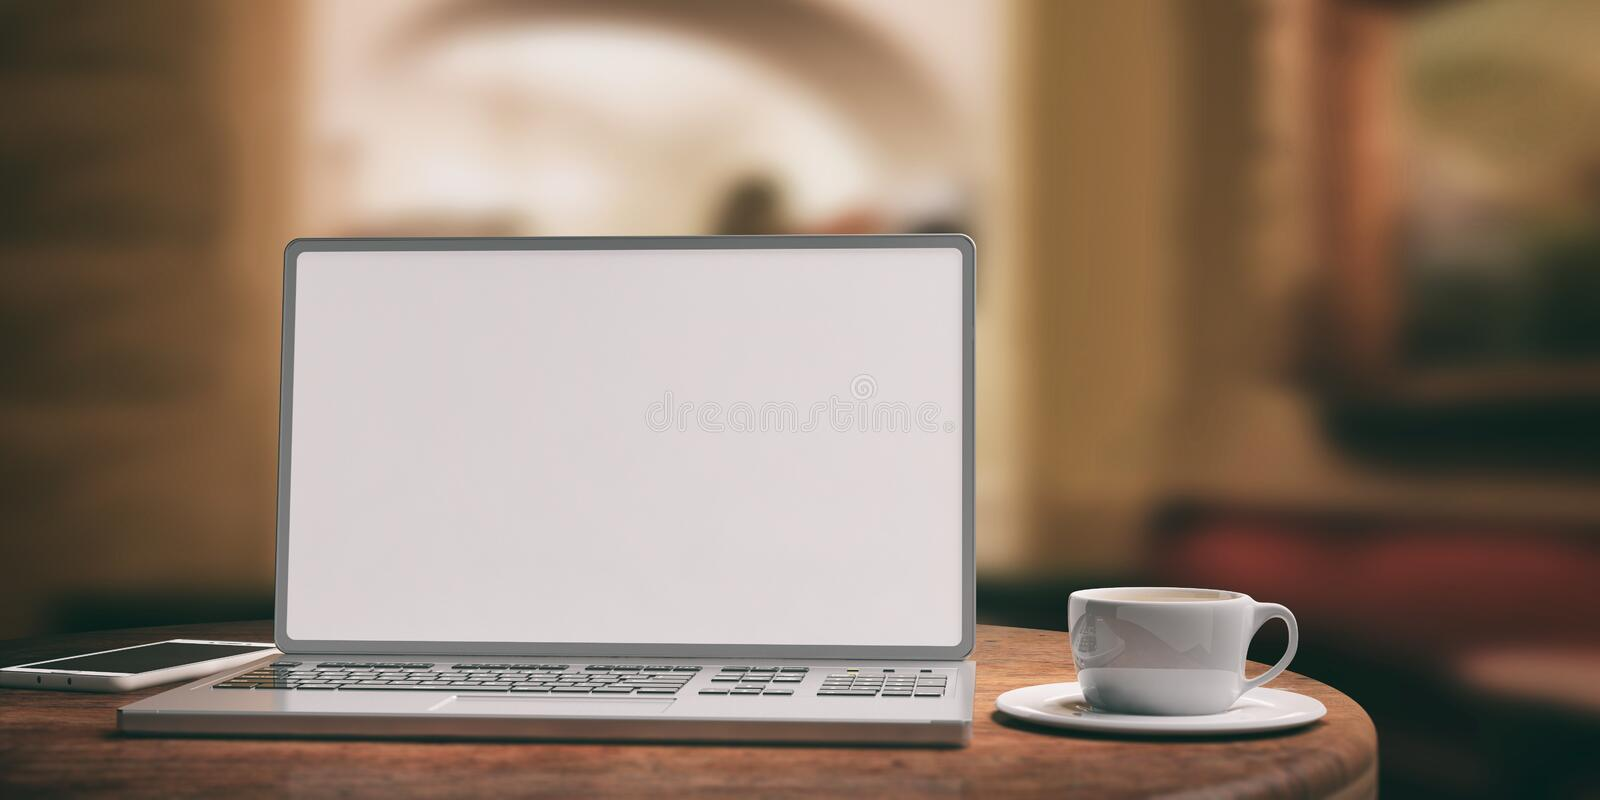 Laptop with white screen on a wooden table. Blurred coffee shop background. 3d illustration vector illustration